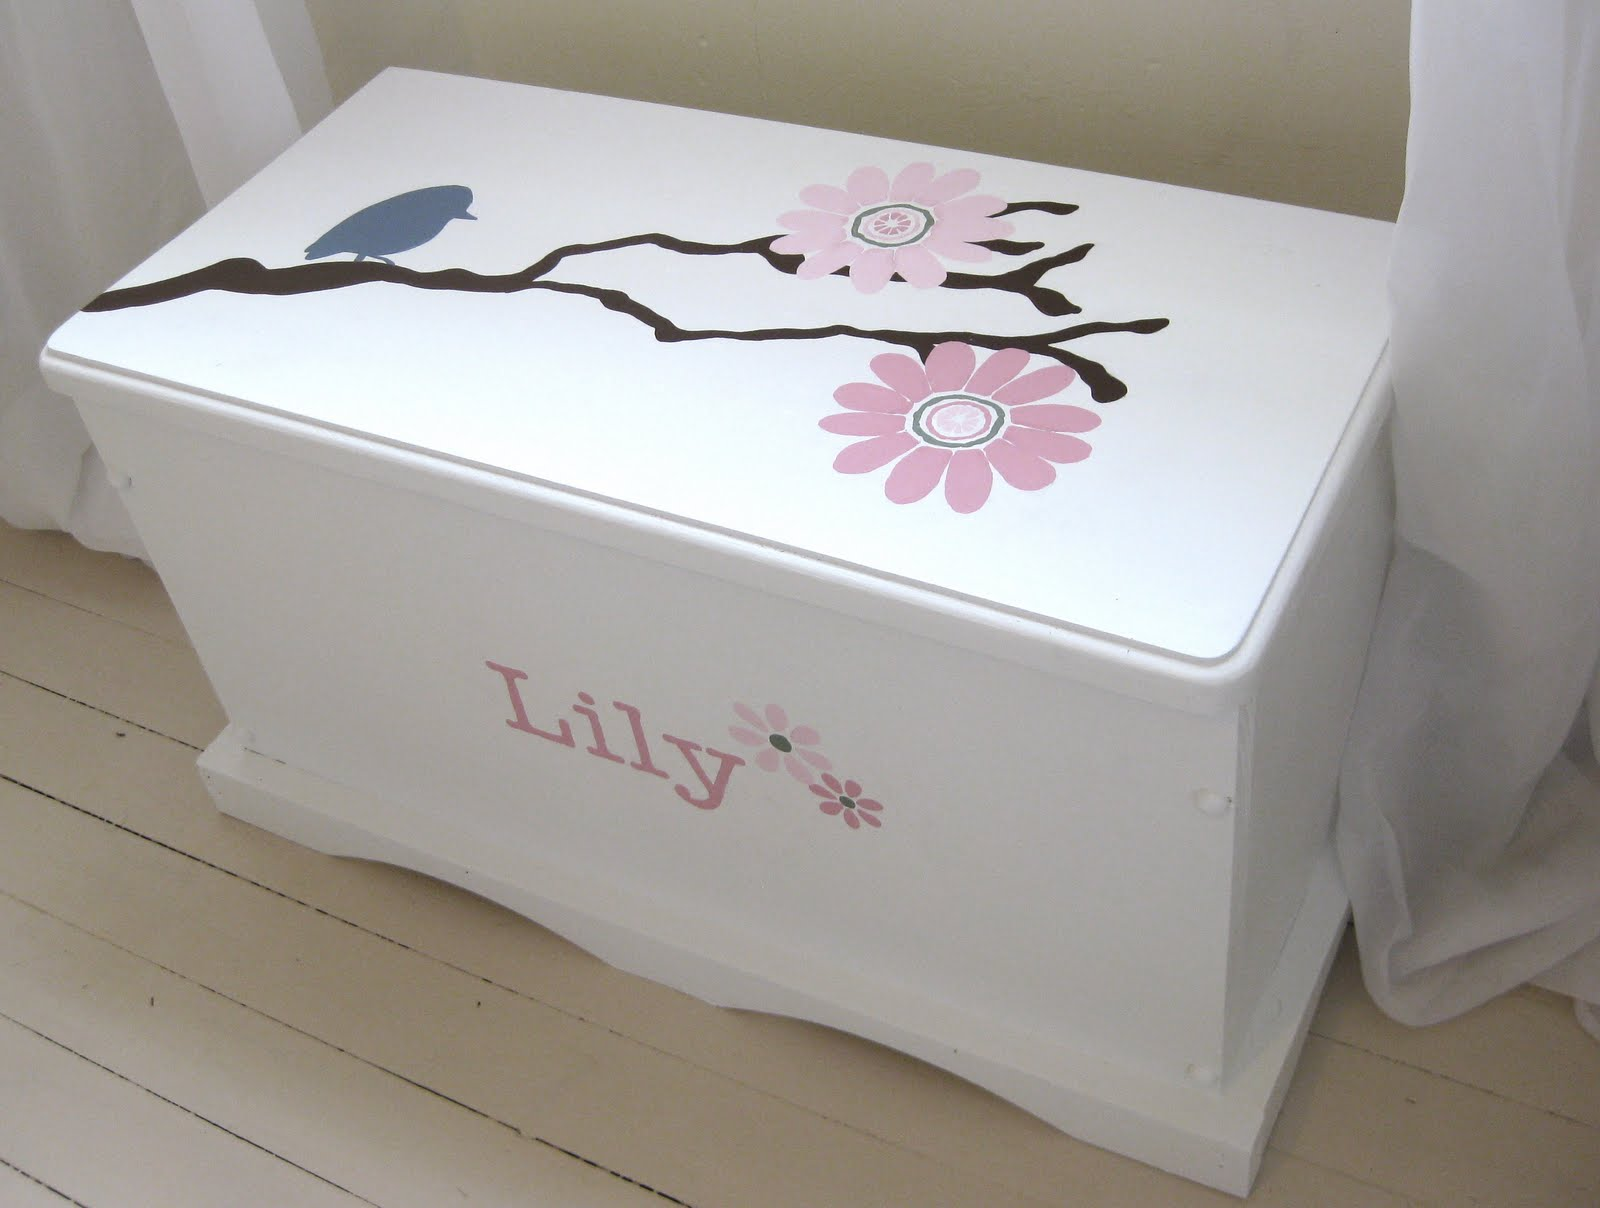 Creative Painting Ideas For A Toy Box